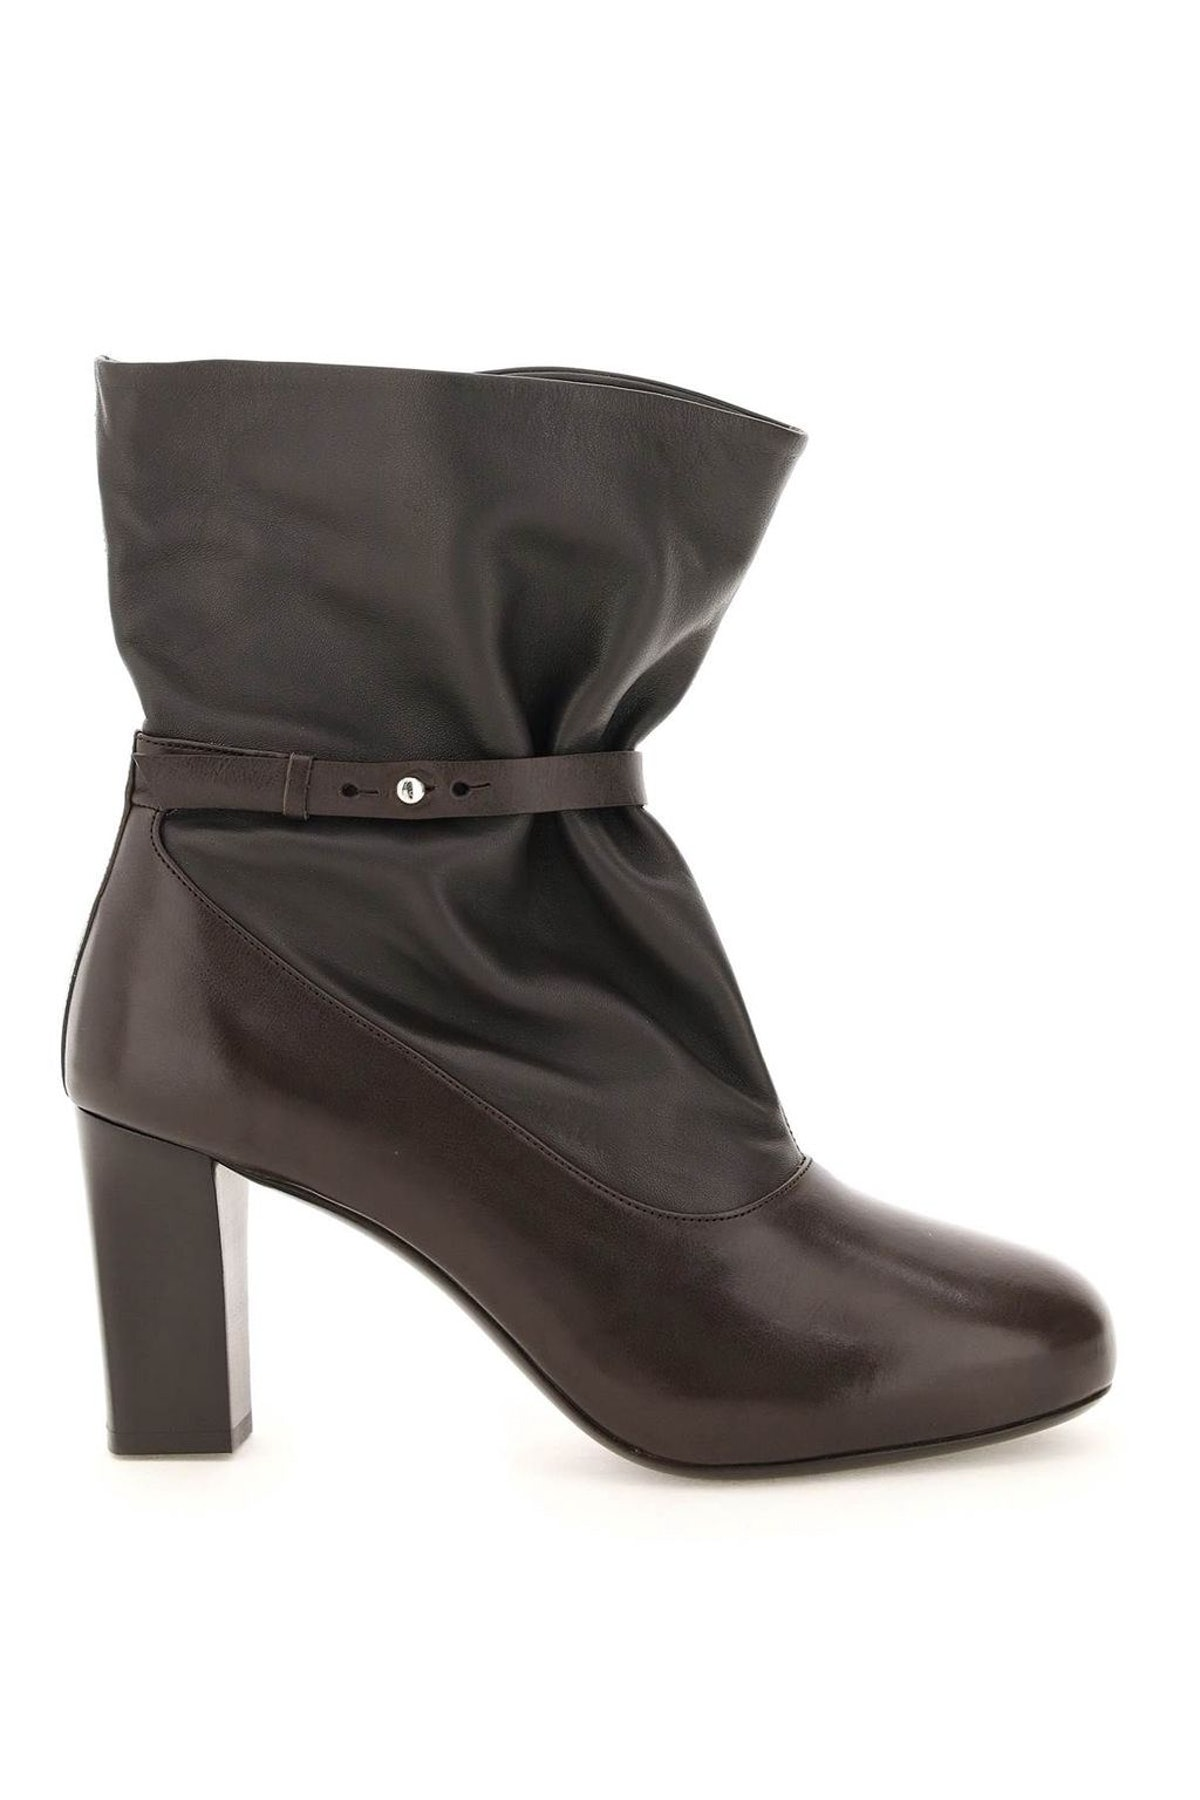 Lemaire Soft Leather Mid Boots: image 1